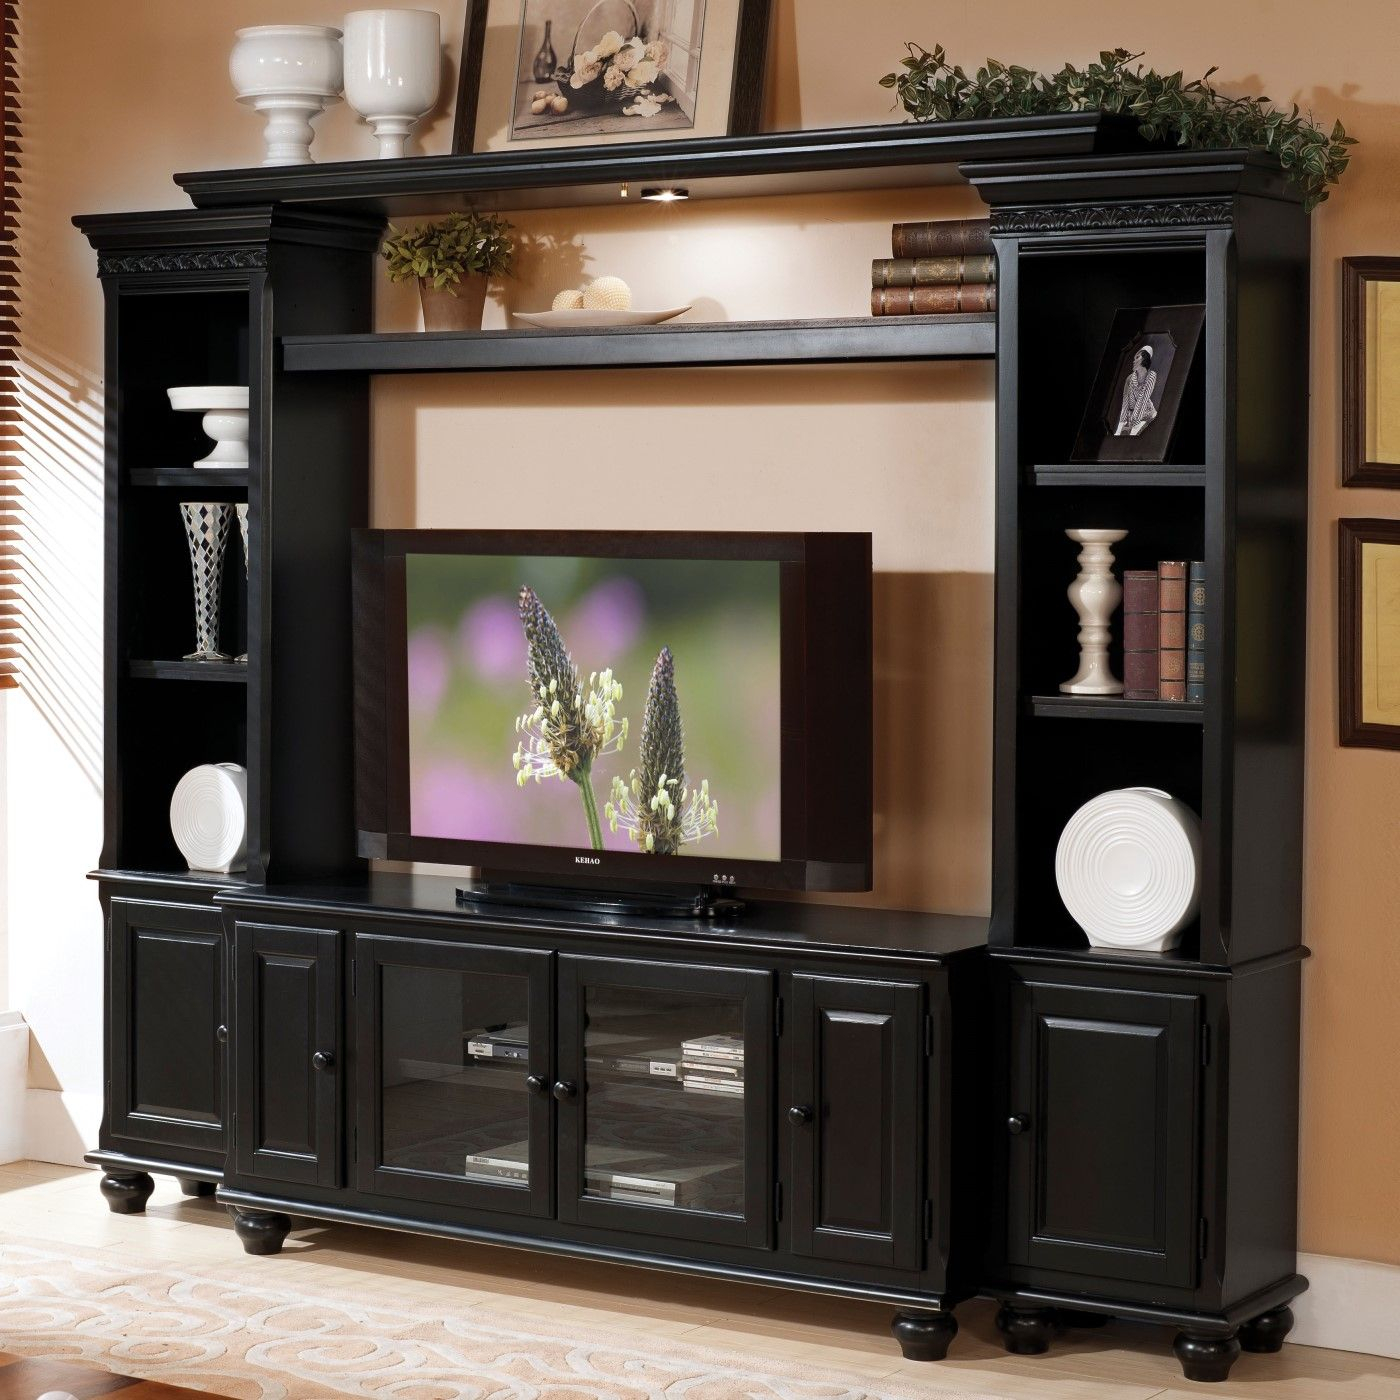 Luella Transitional Tv Stand With Glass Doors & Framed Throughout Tv Cabinets With Glass Doors (View 1 of 15)